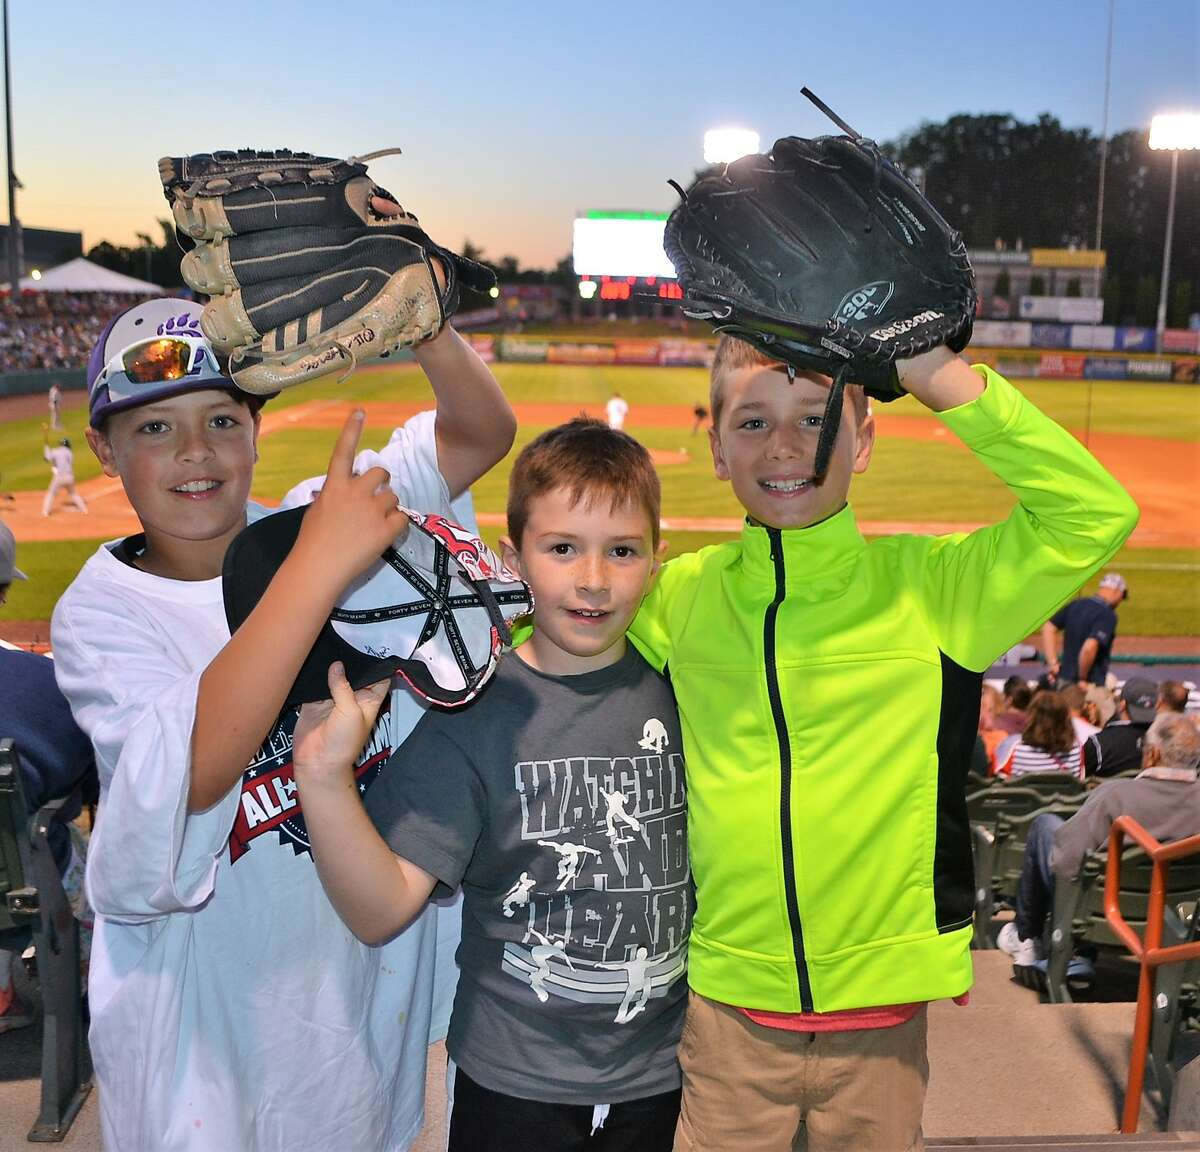 Were you Seen at Bruno Stadium for the Tri City ValleyCats' first game of the 2018 season on June 15, 2018?